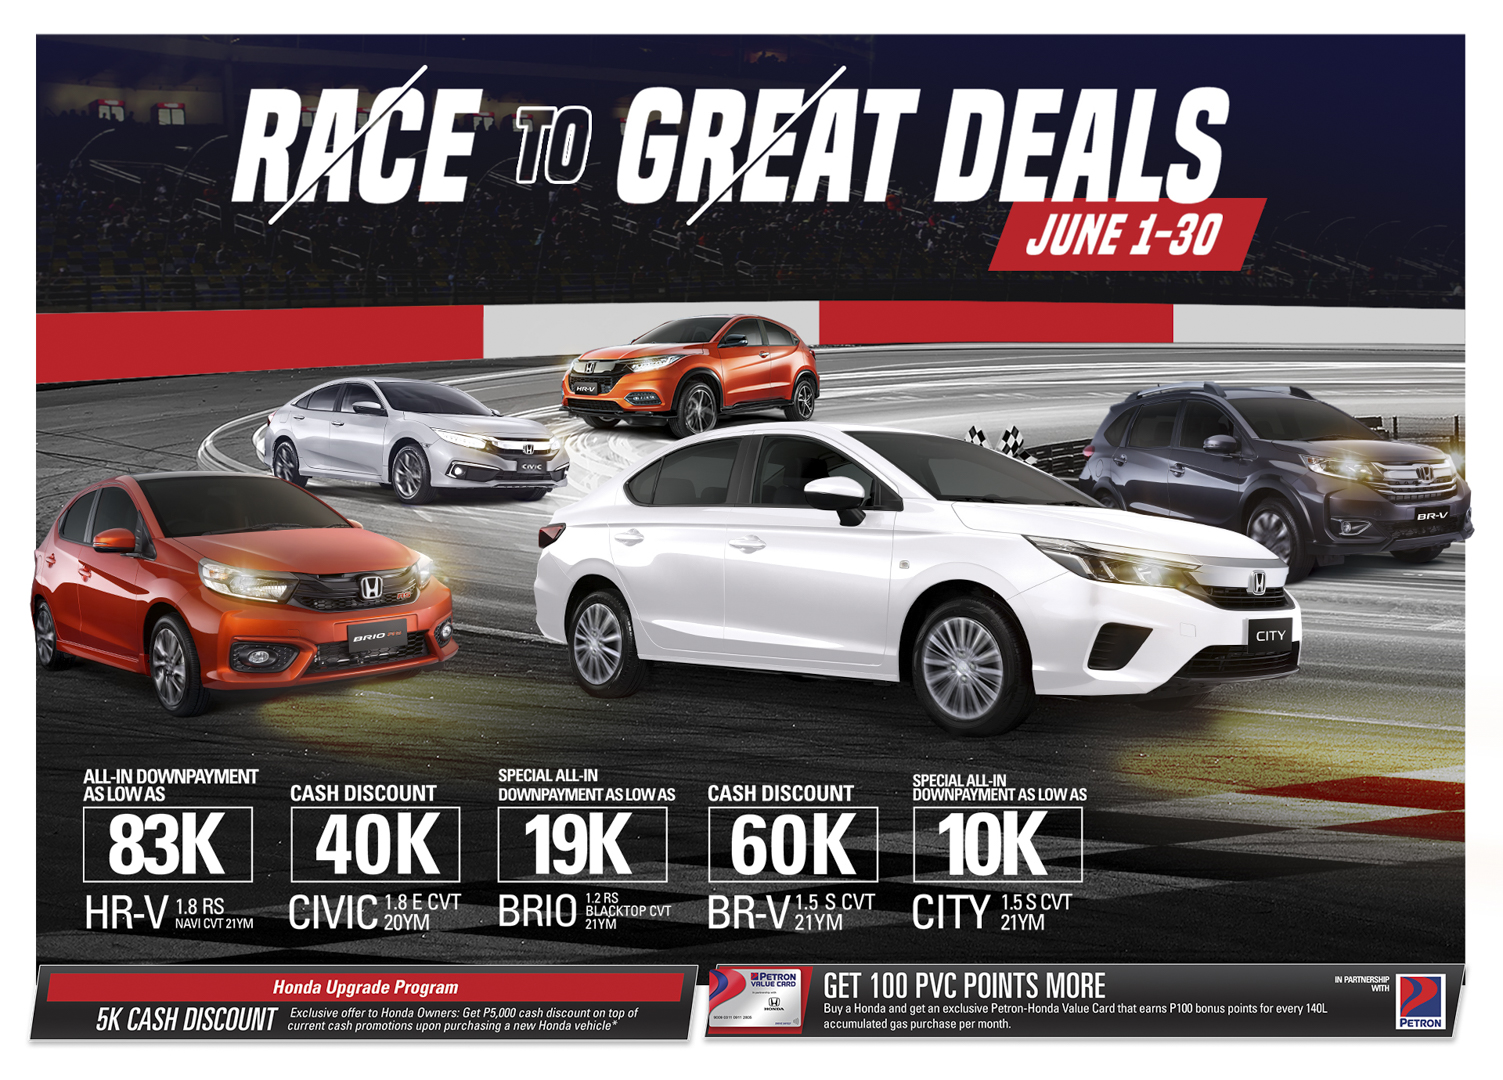 Exciting promos and great deals await Honda customers this June